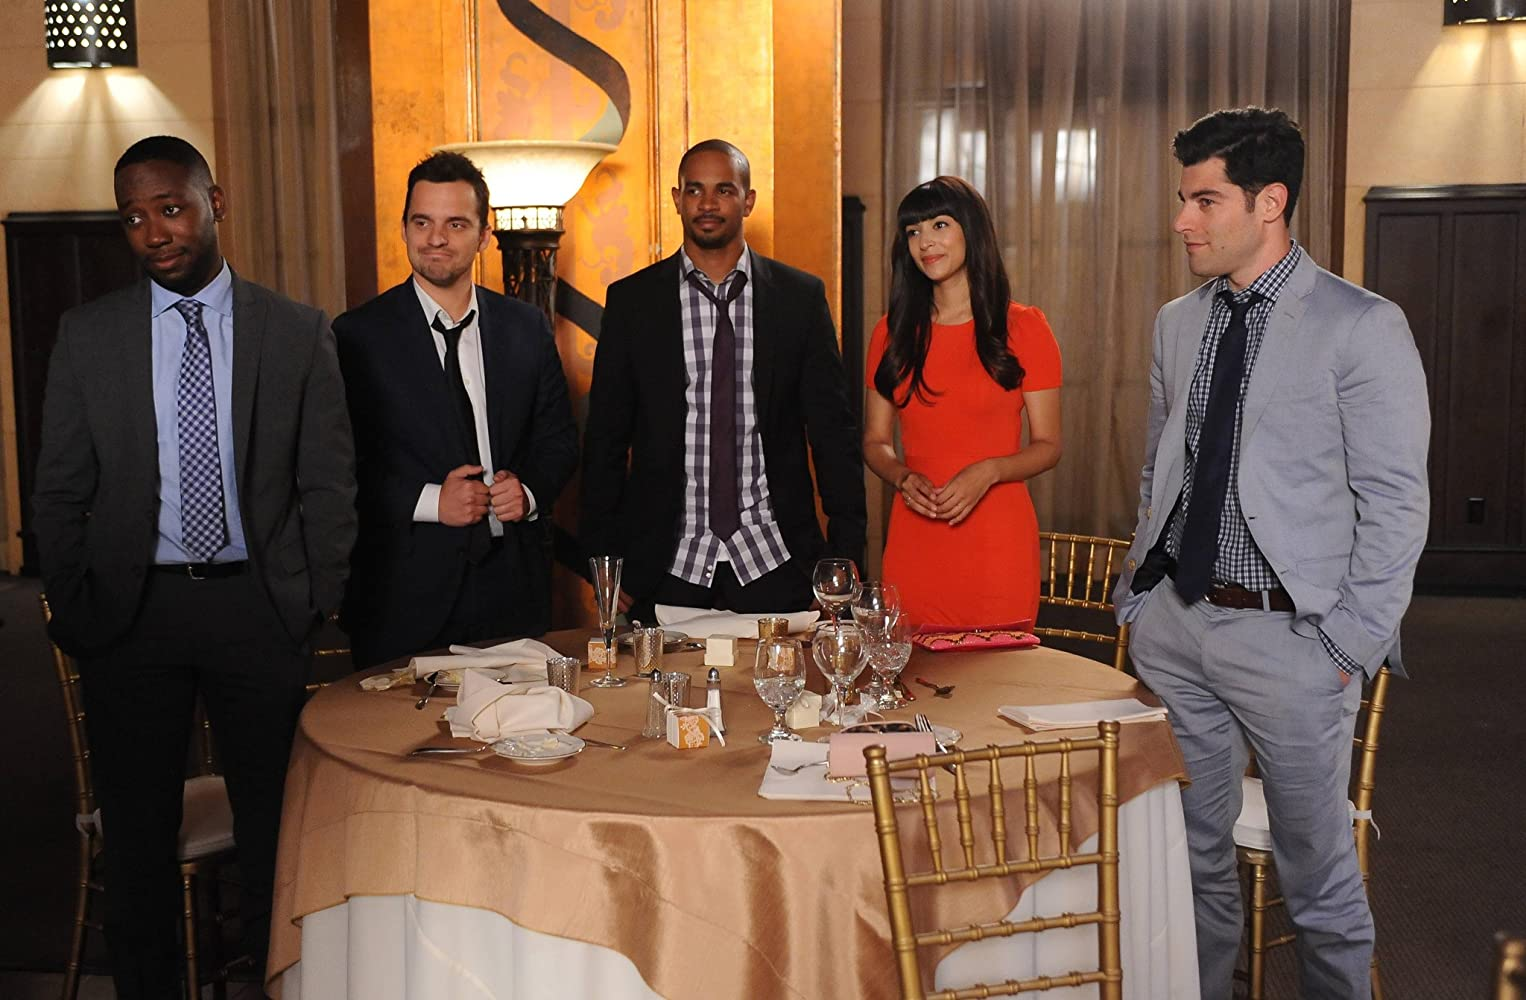 Max Greenfield, Damon Wayans Jr., Hannah Simone, Lamorne Morris, and Jake Johnson in New Girl (2011)